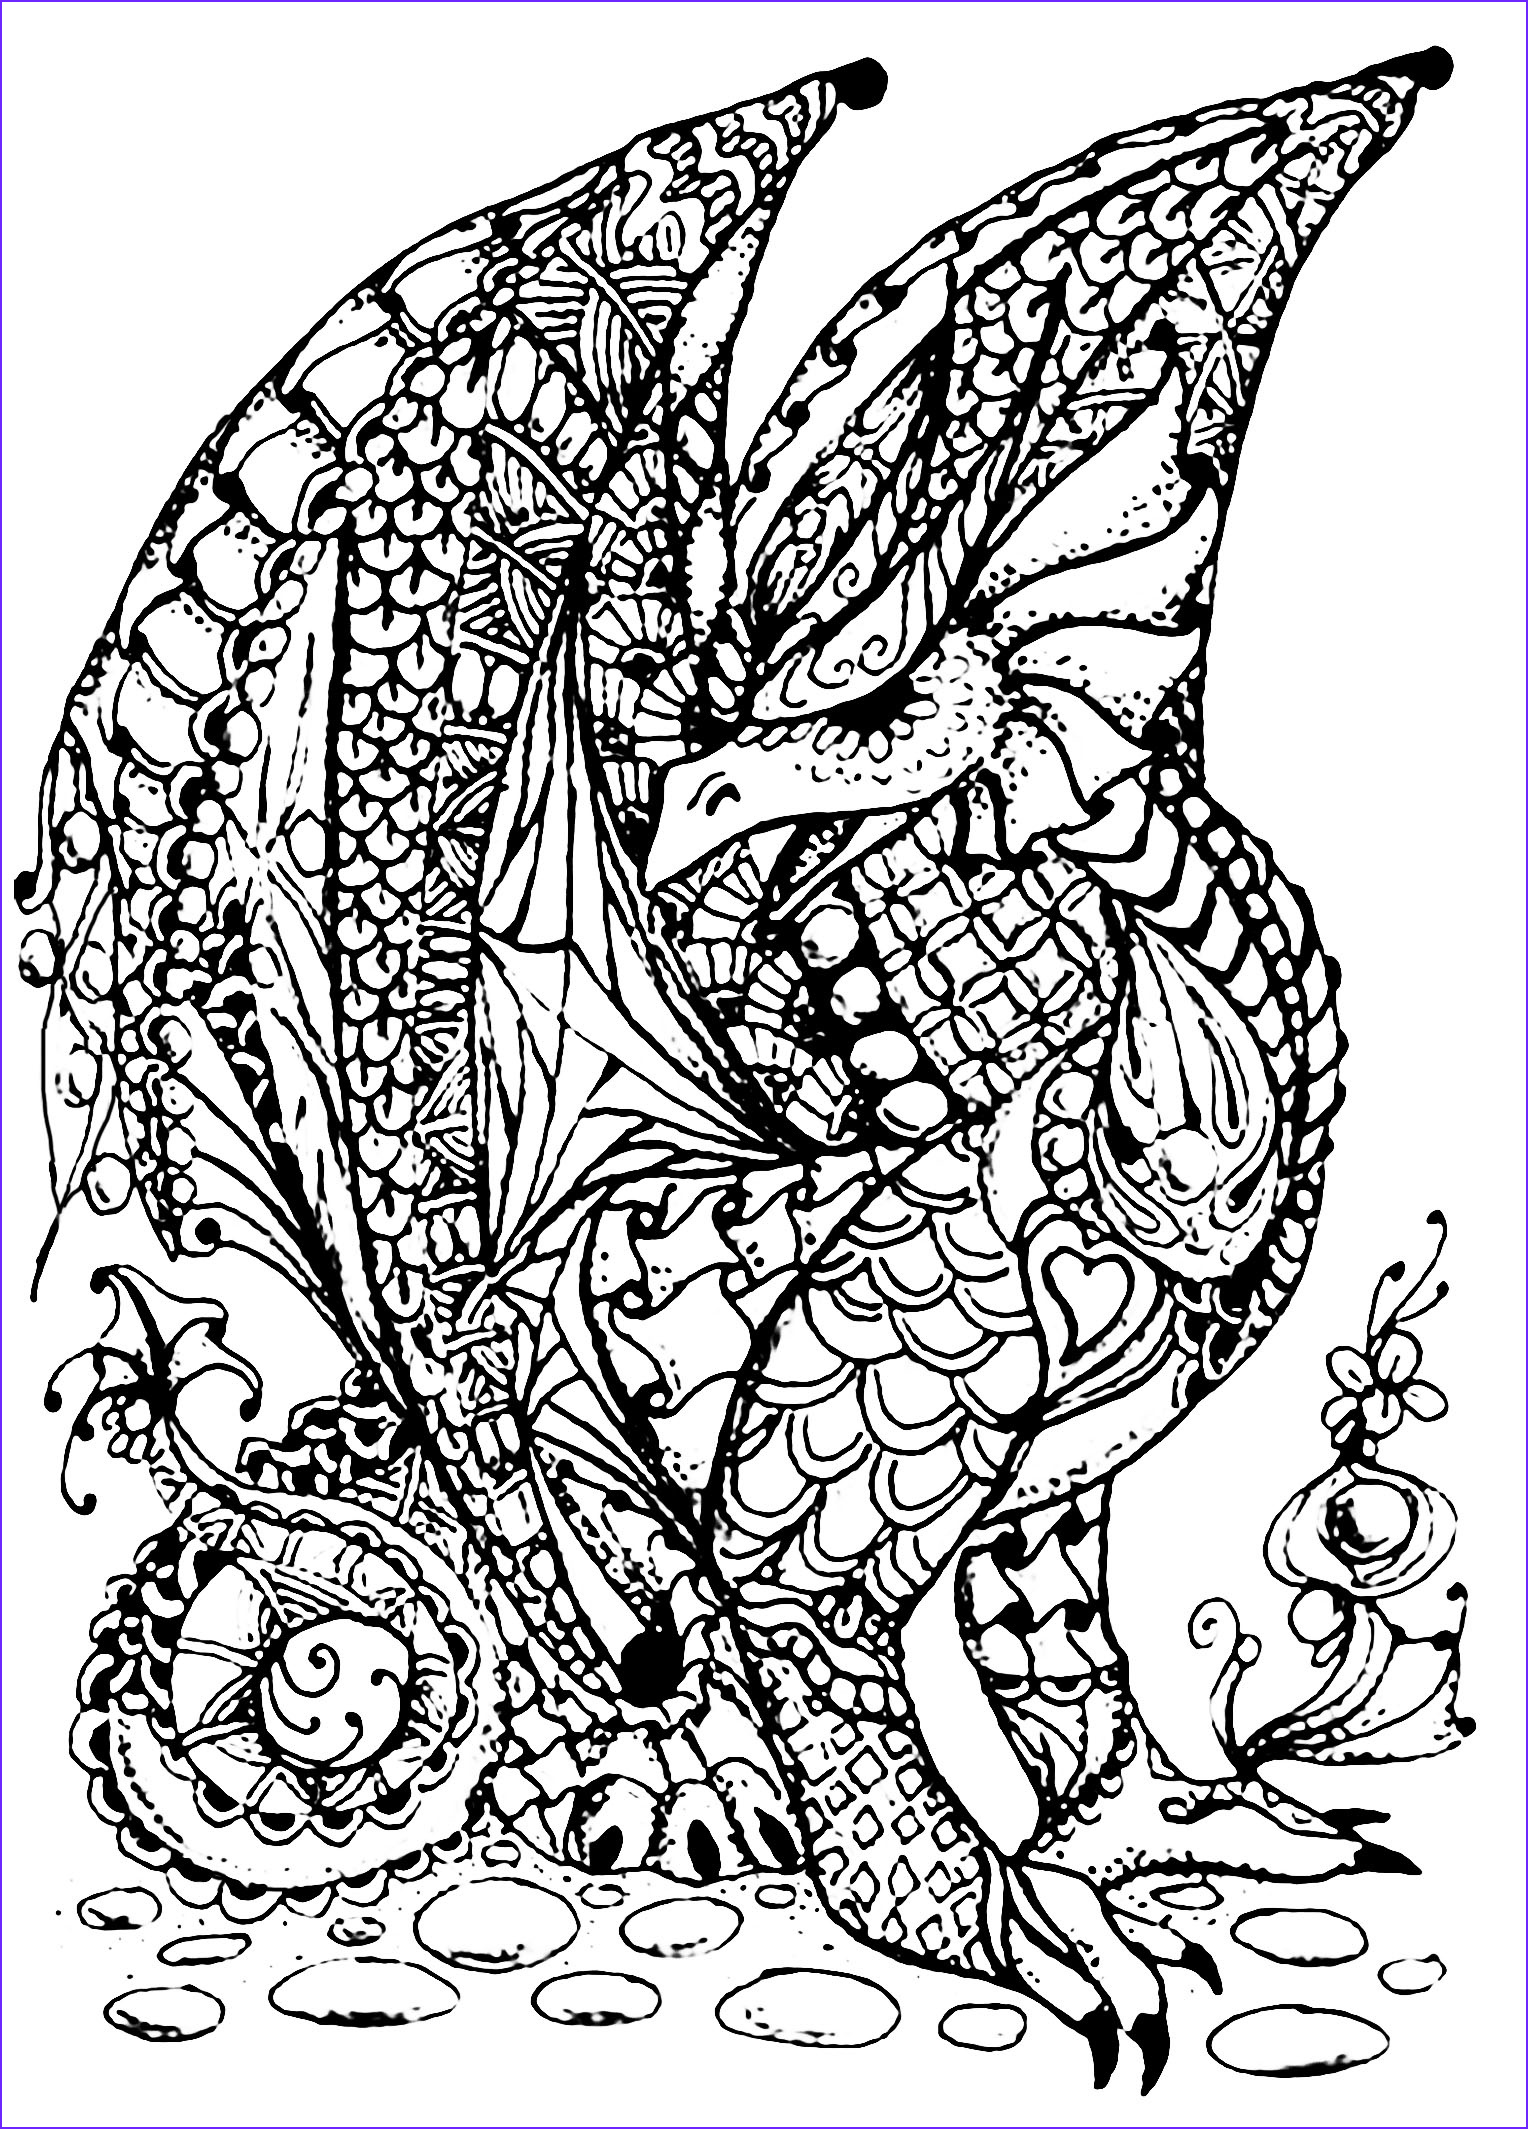 Dragons Coloring Book Luxury Photos Dragon Full Of Scales Dragons Adult Coloring Pages